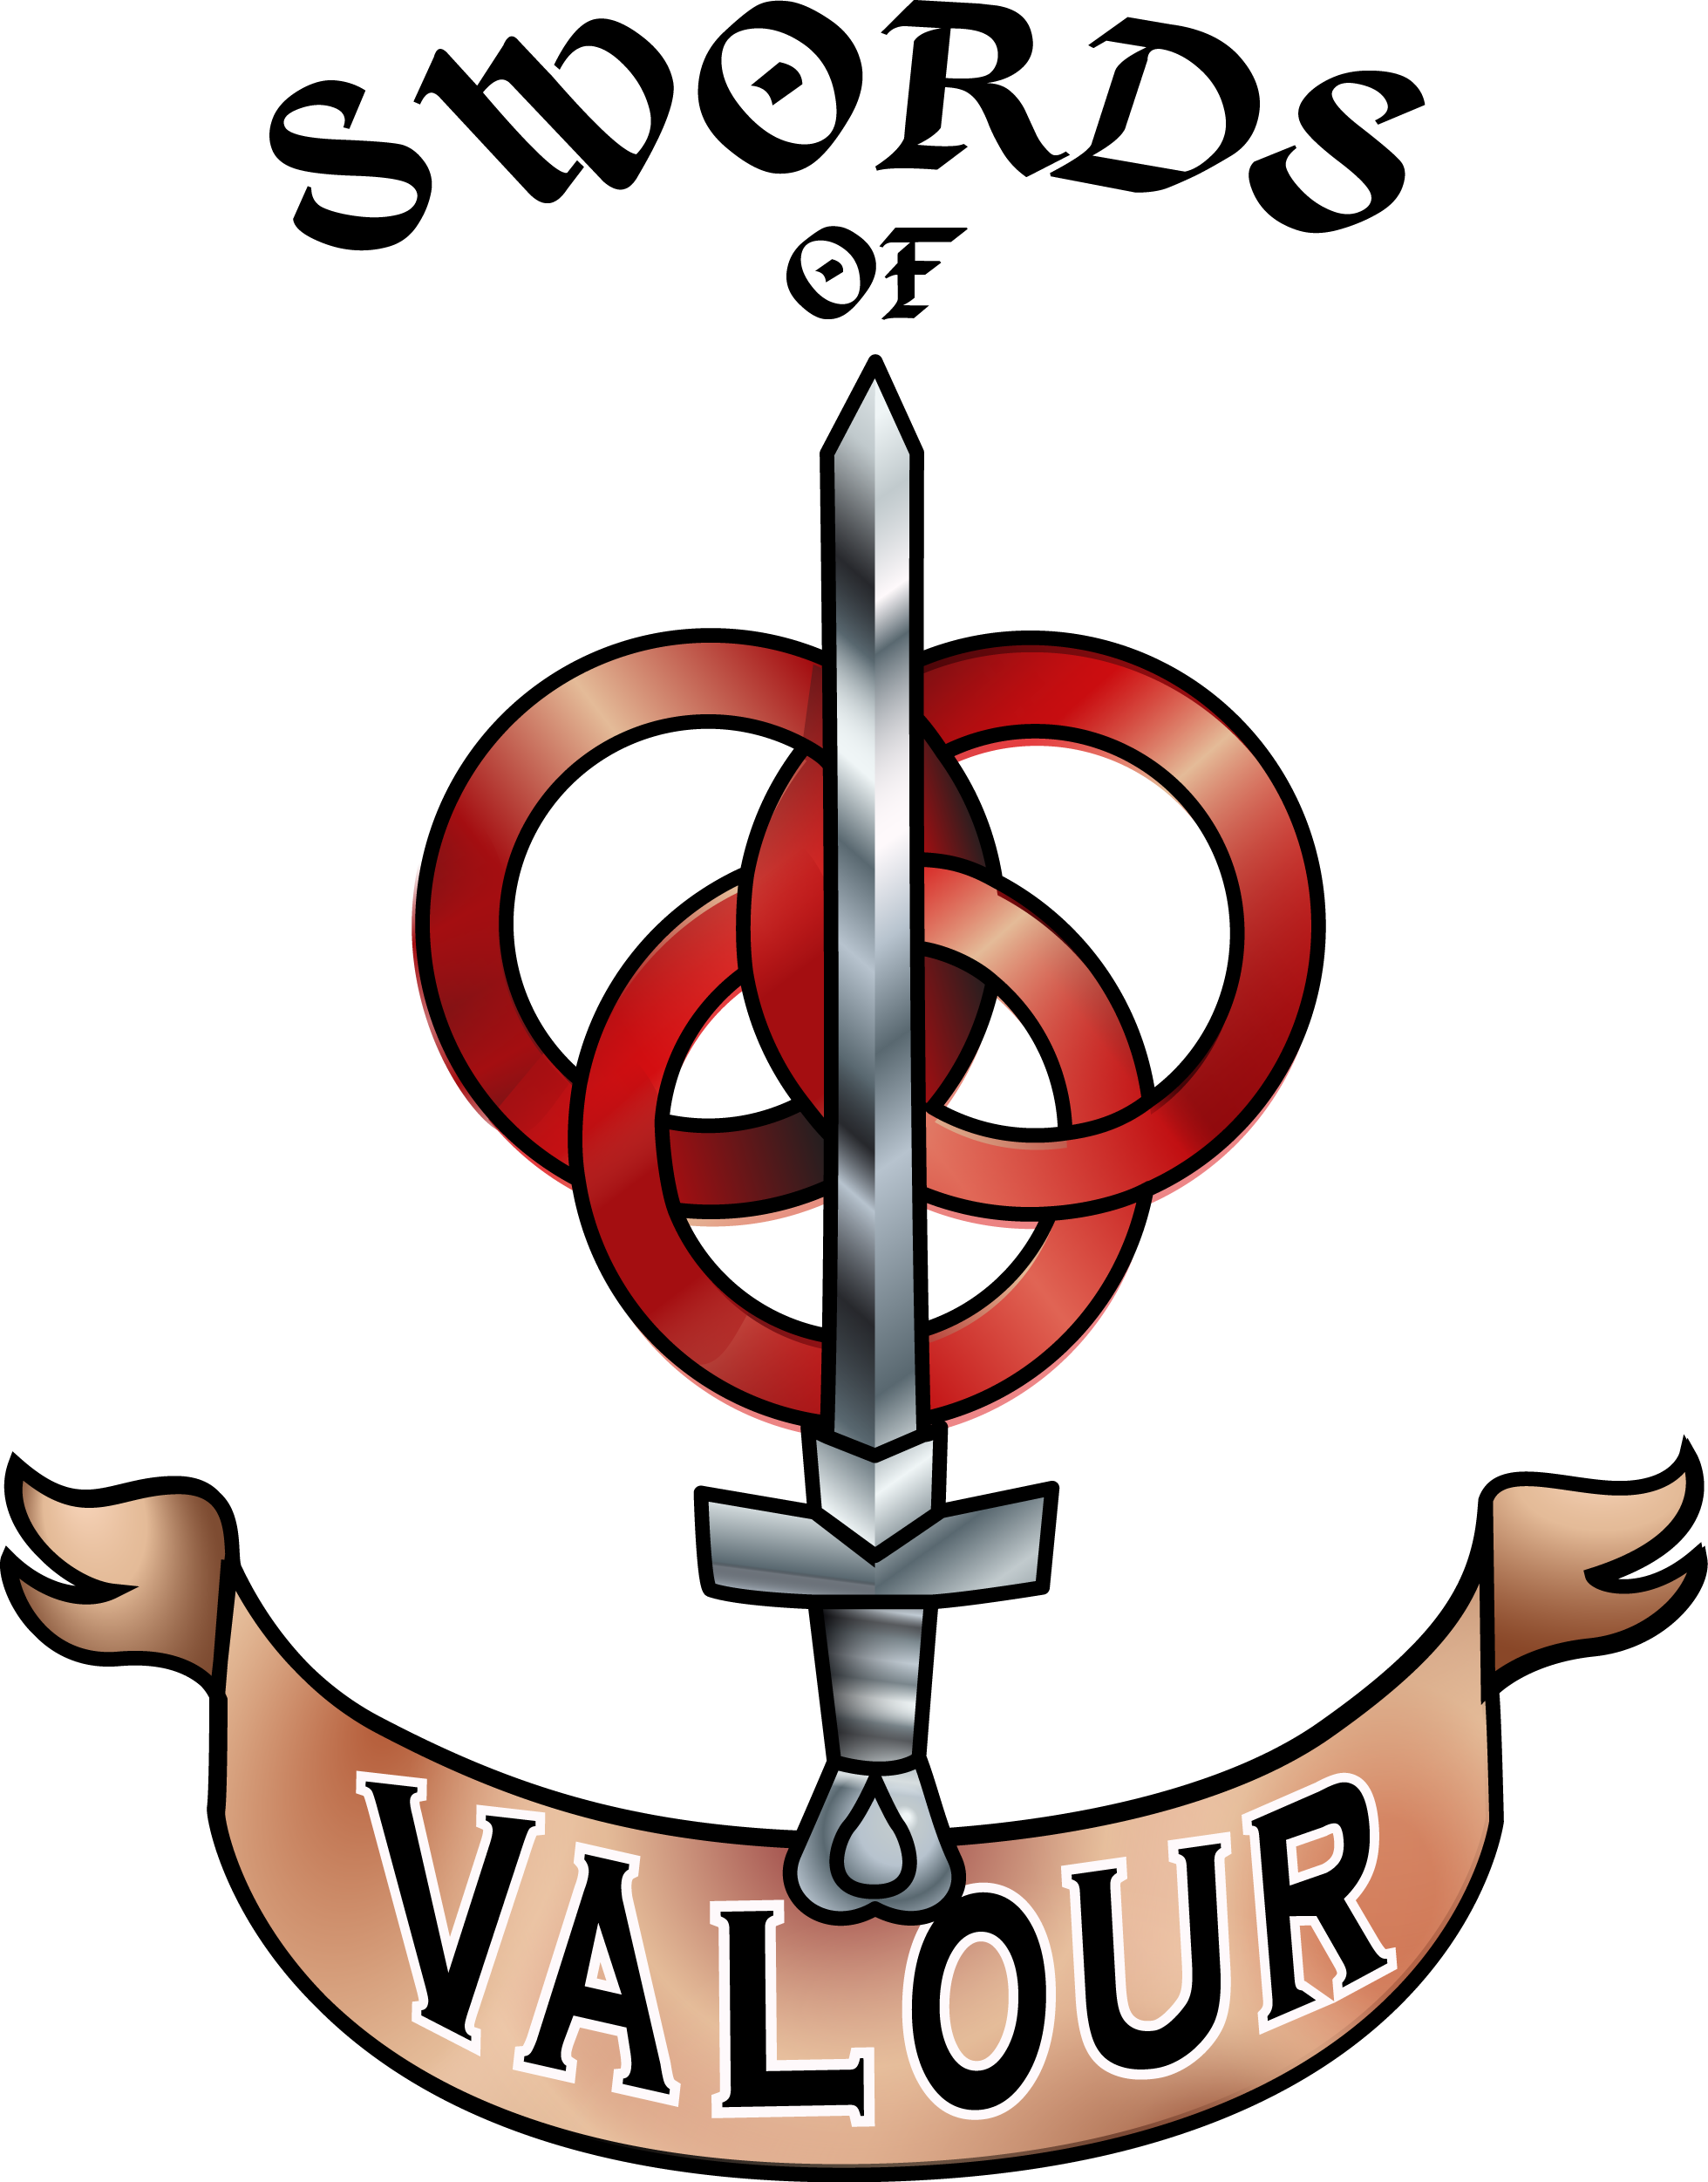 Swords of Valour Logo